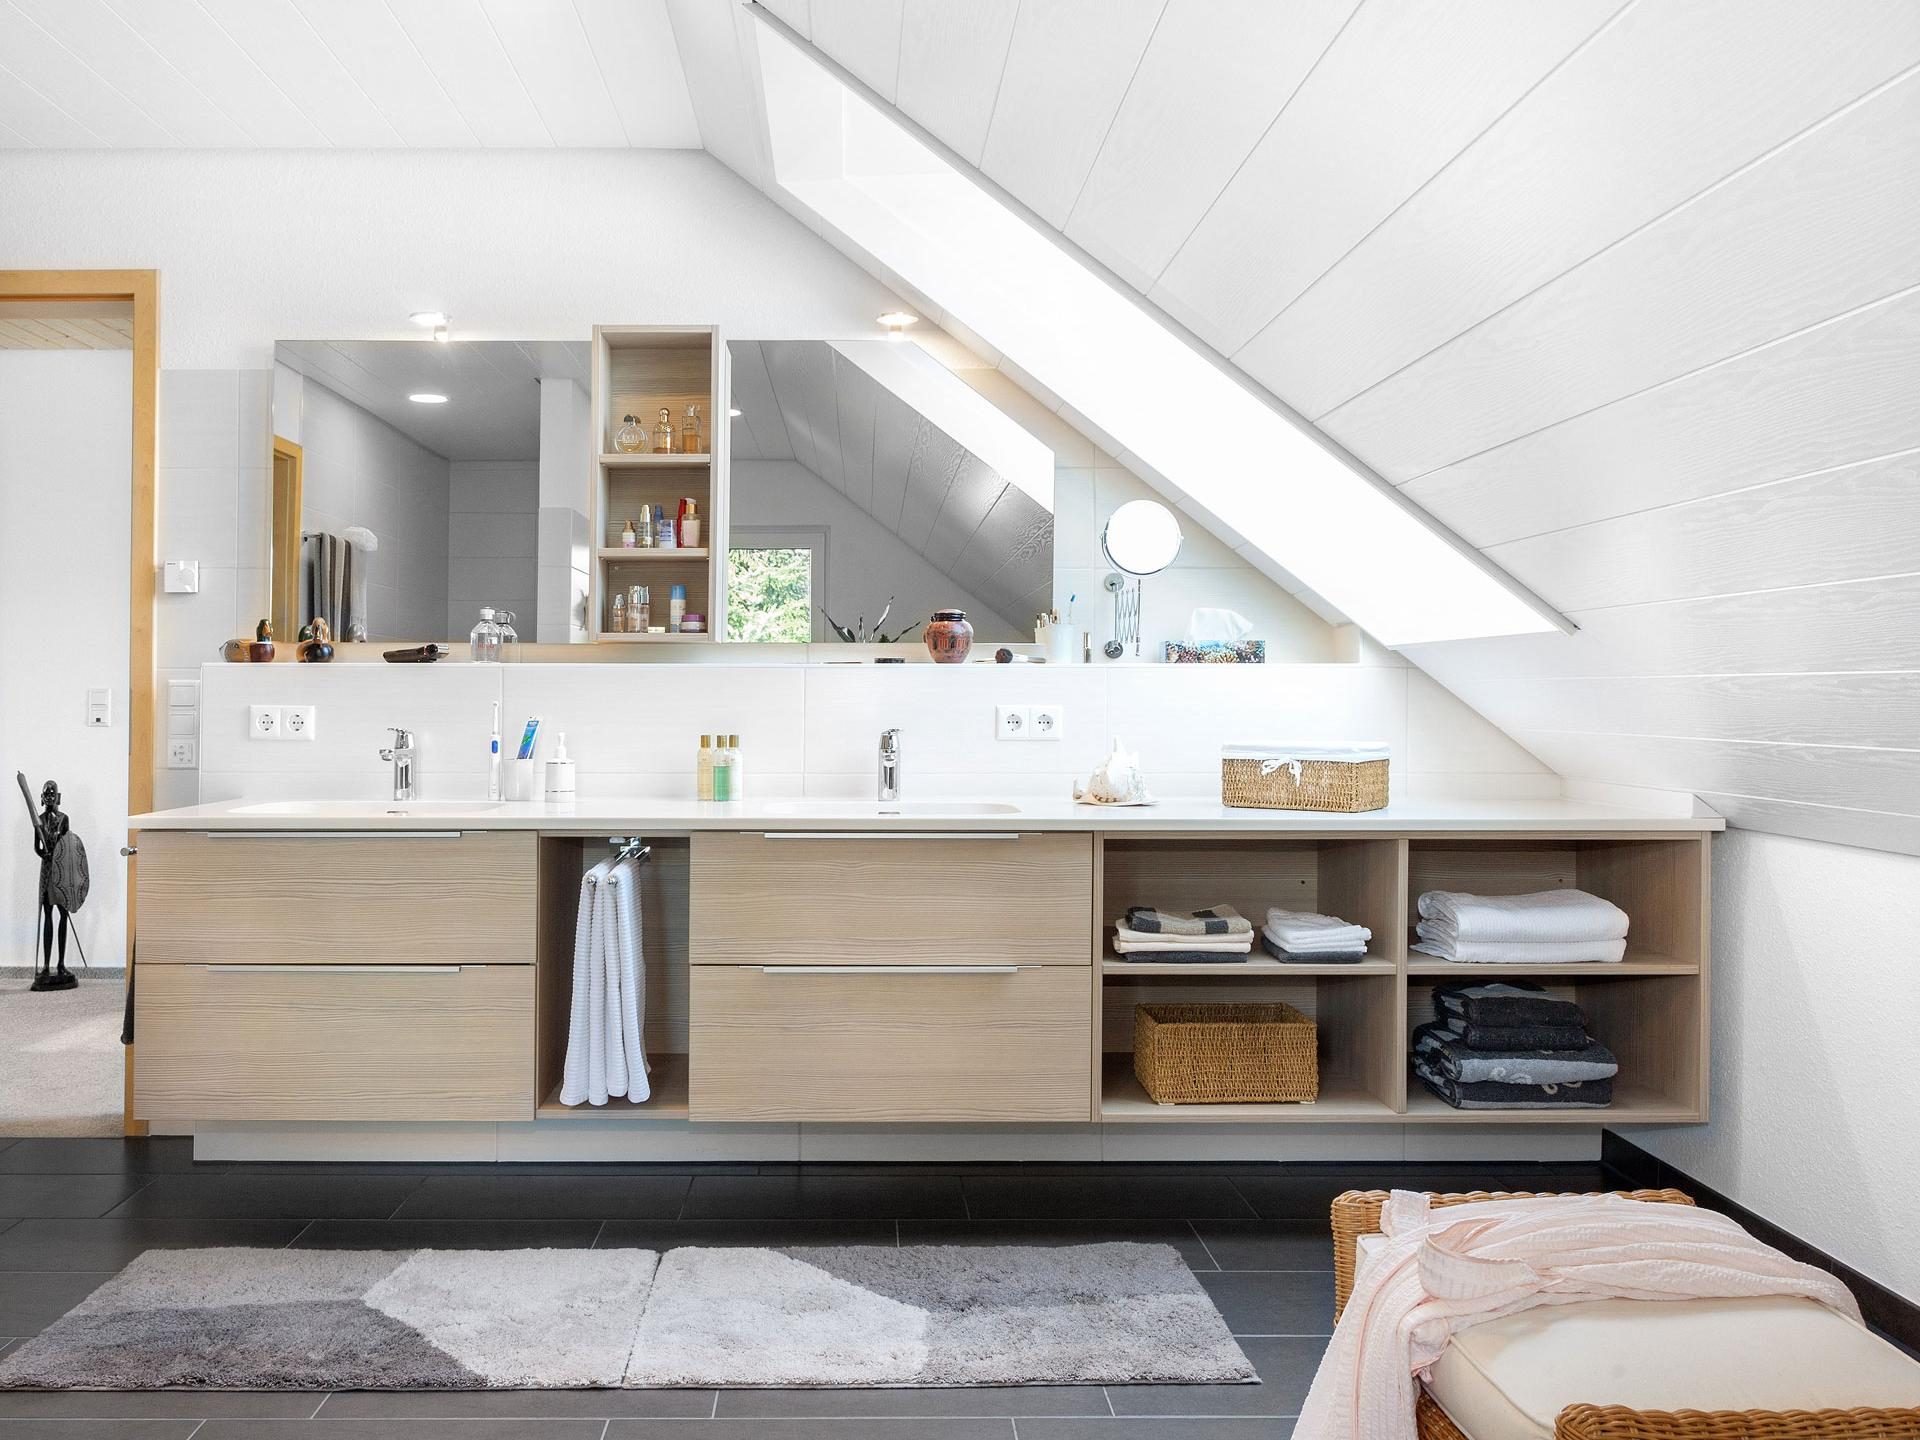 Ideal bathroom furniture solutions for pitched roofs